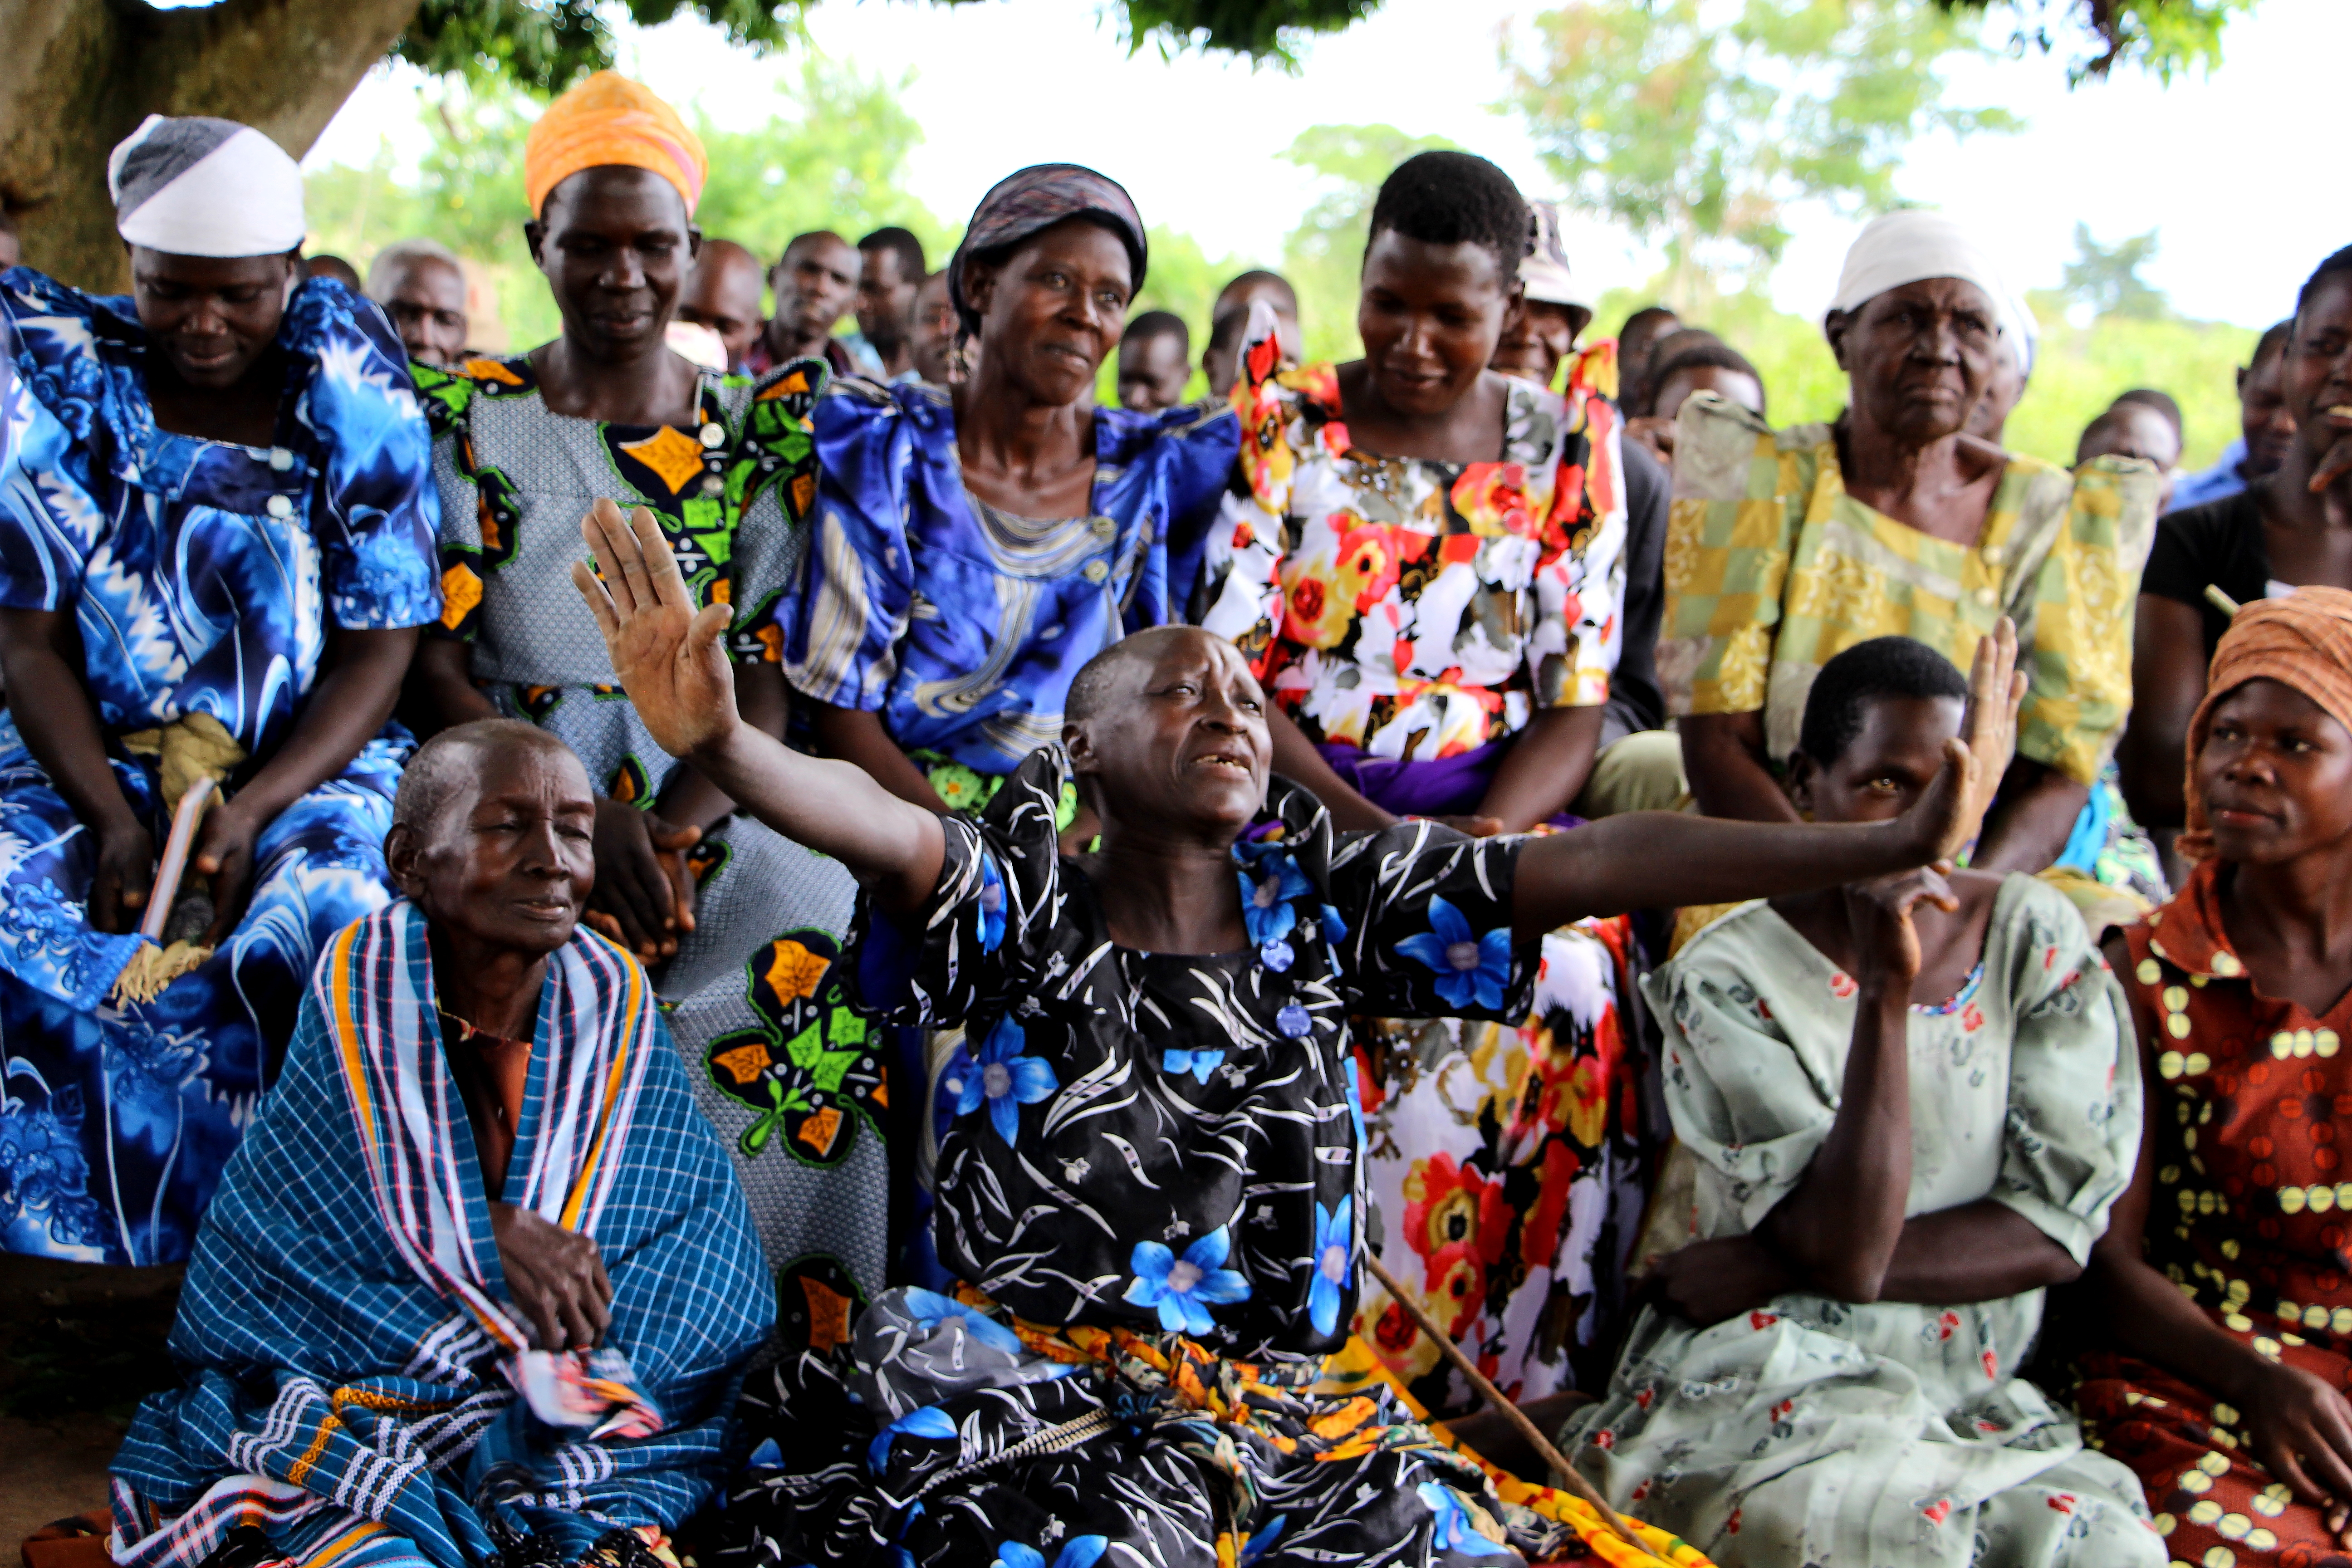 Group of older African women